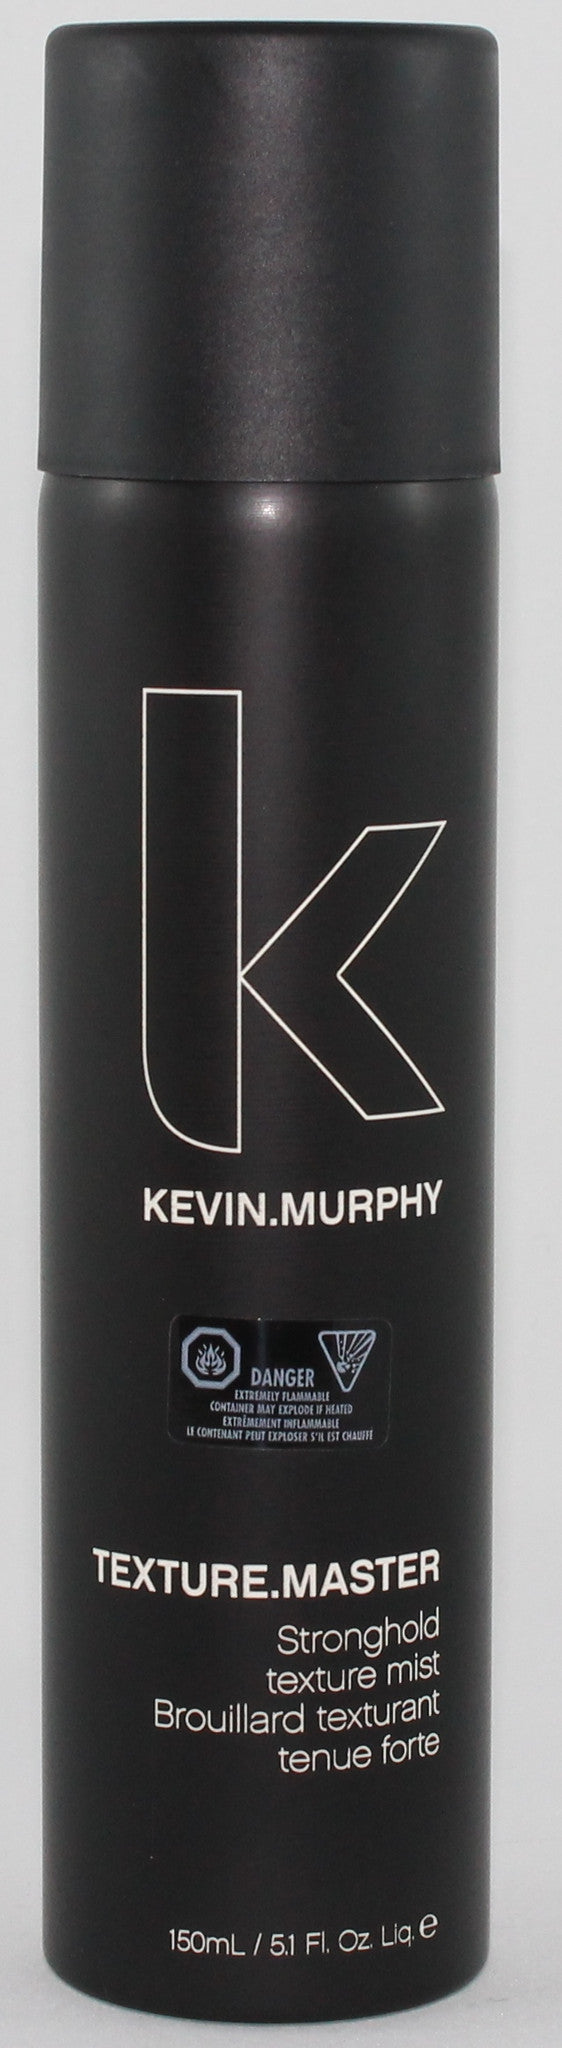 KEVIN MURPHY TEXTURE MASTER